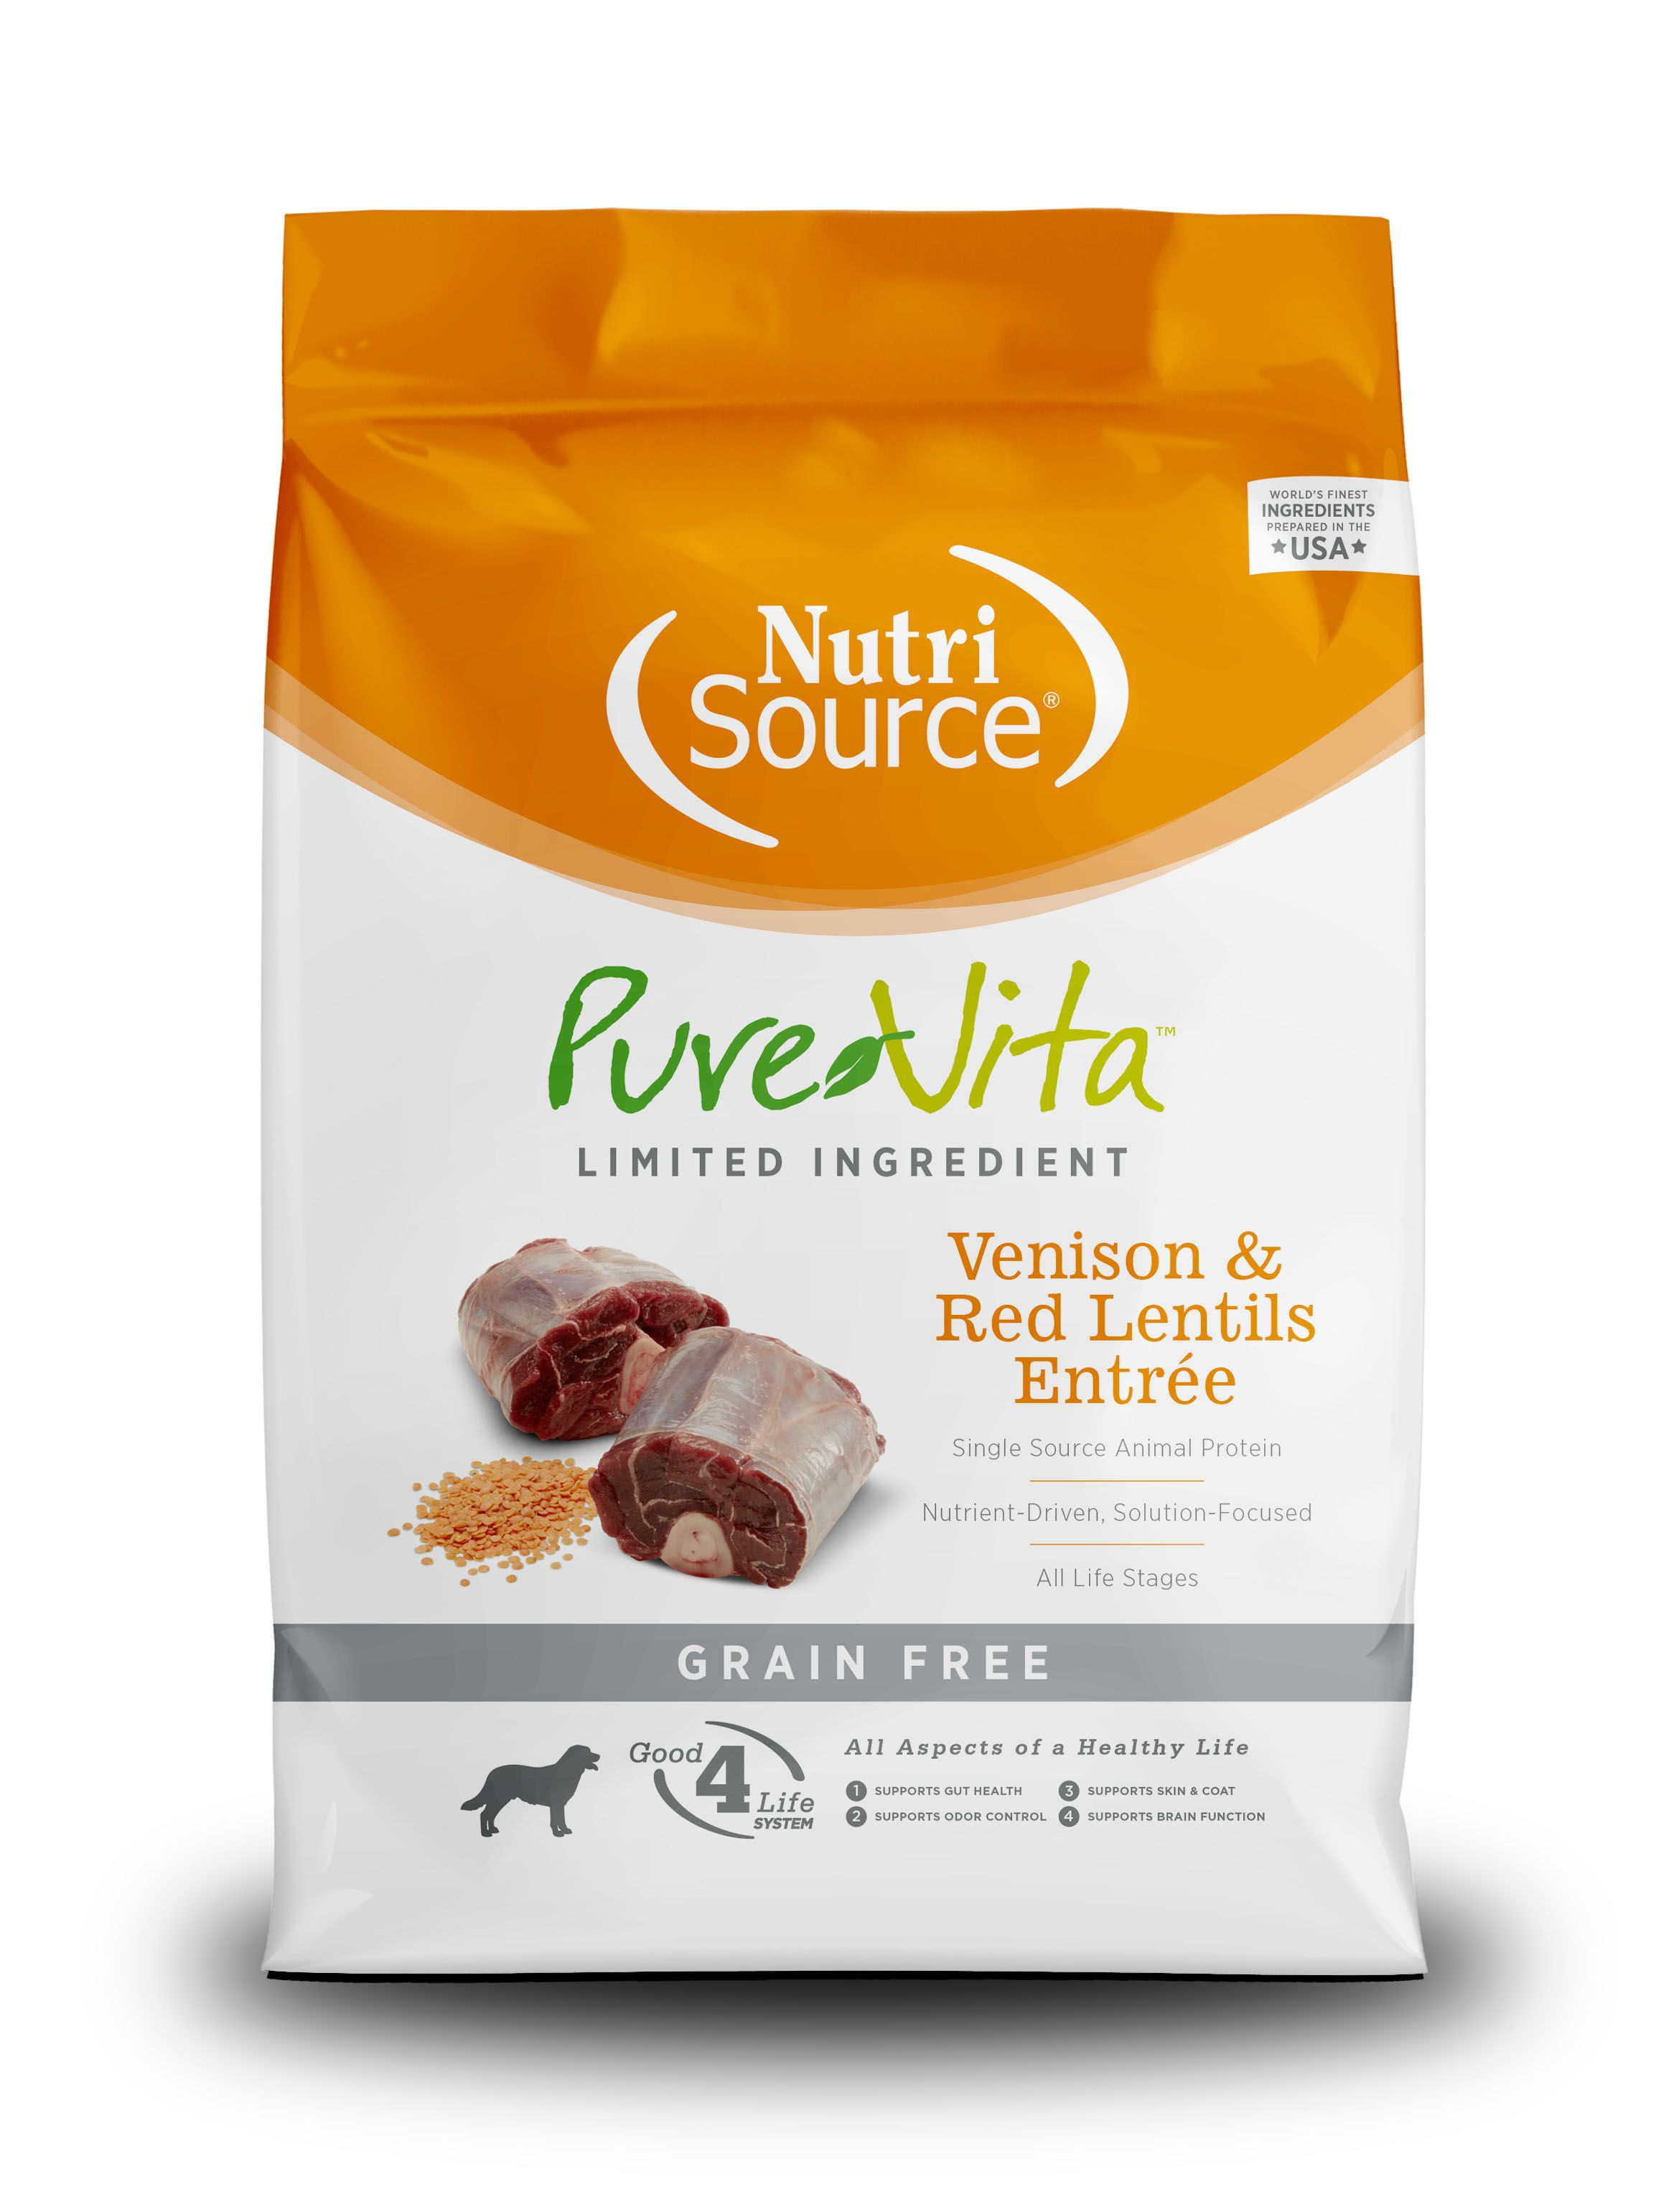 PureVita Grain Free Venison and Red Lentils Entree Dry Dog Food, 25lbs